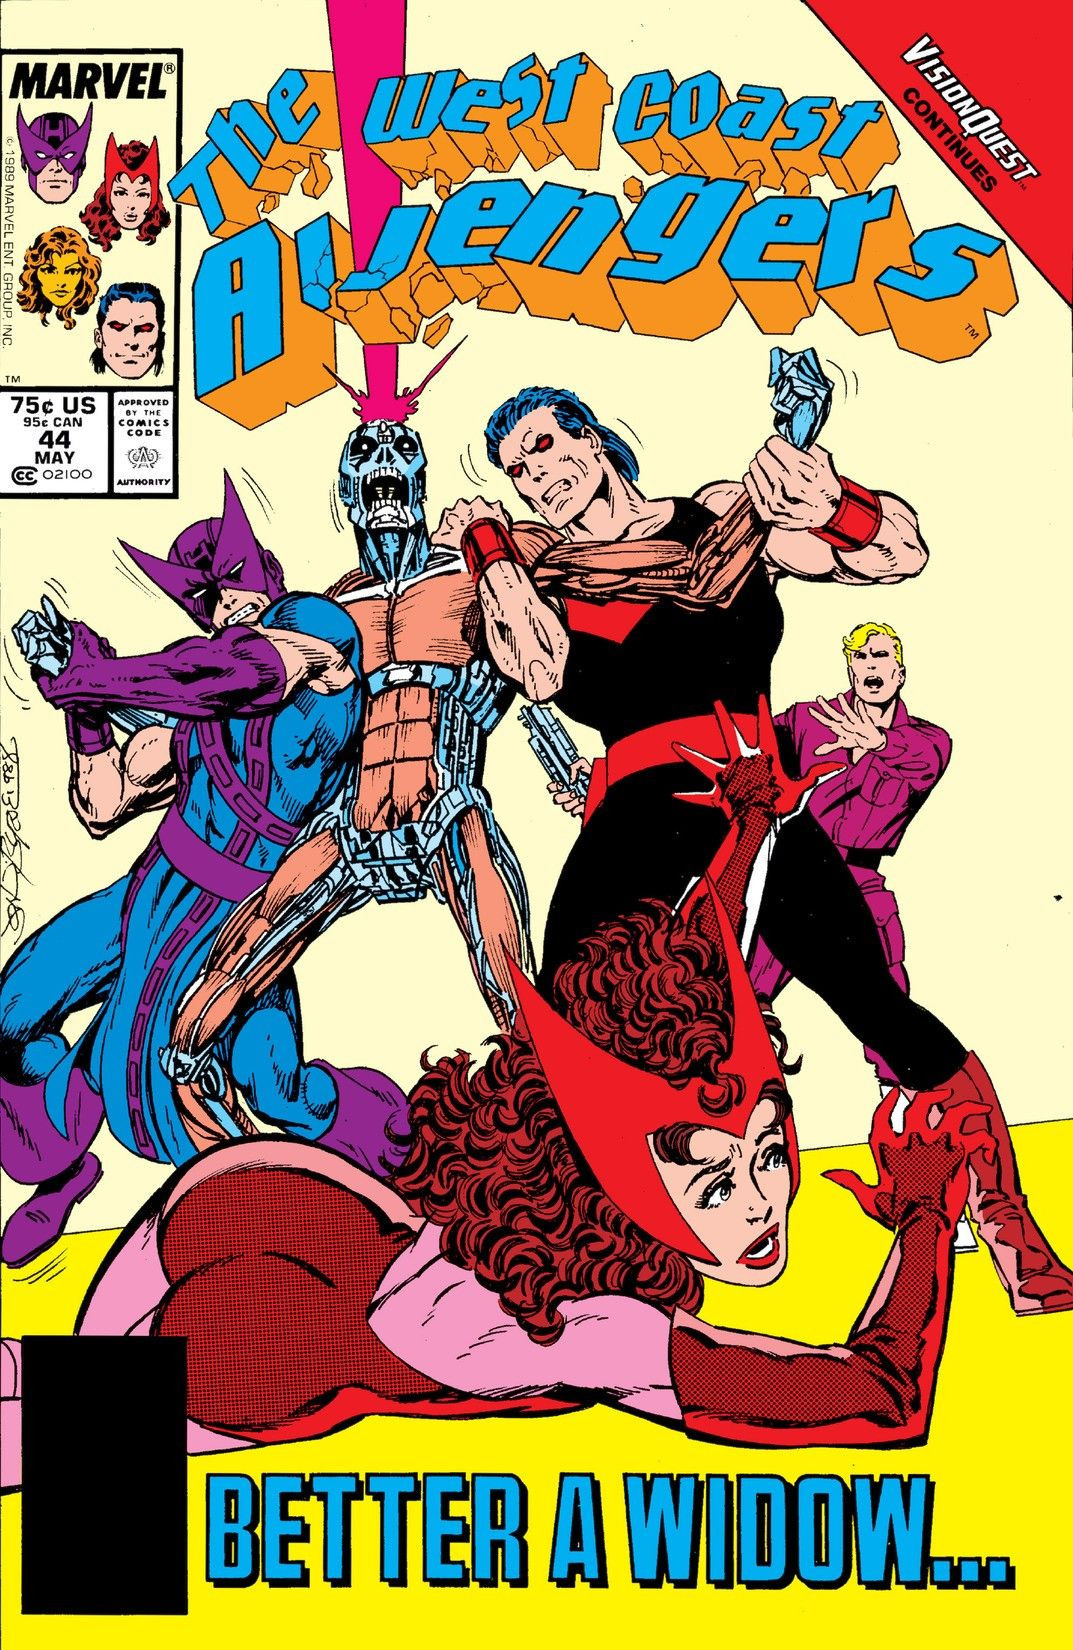 http://images2.wikia.nocookie.net/__cb20080514021354/marveldatabase/images/1/13/West_Coast_Avengers_Vol_2_44.jpg